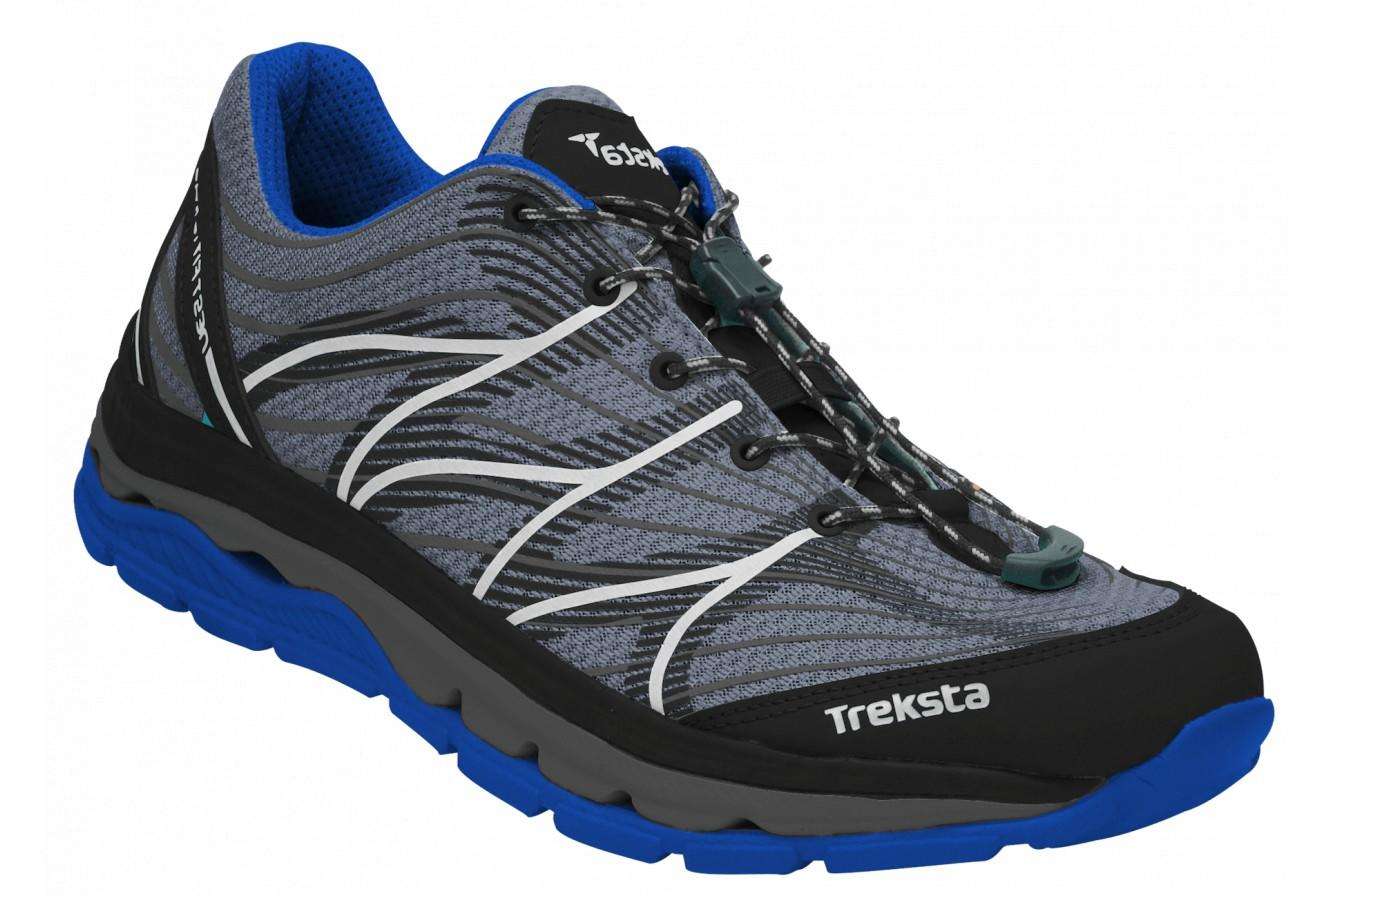 The Treksta Mega Wave is a terrific all-terrain running shoe.